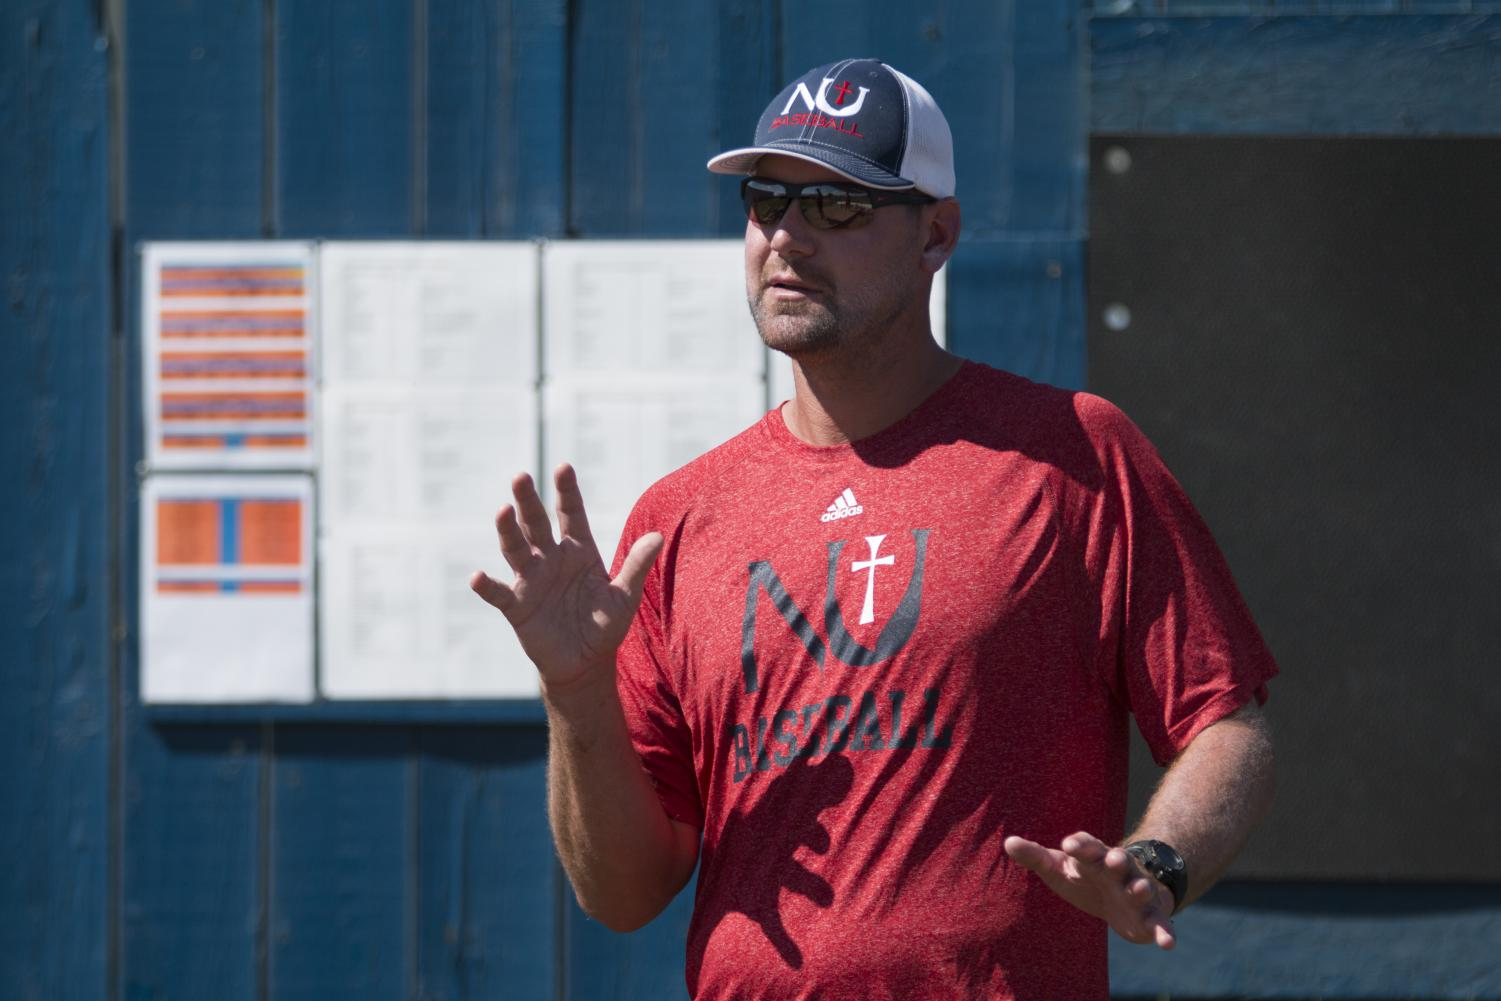 Newman University Pitching Coach Mike Pelfrey instructs pitchers during practice. Pelfrey was a pitcher for Wichita State until he was drafted after his junior year in 2005.